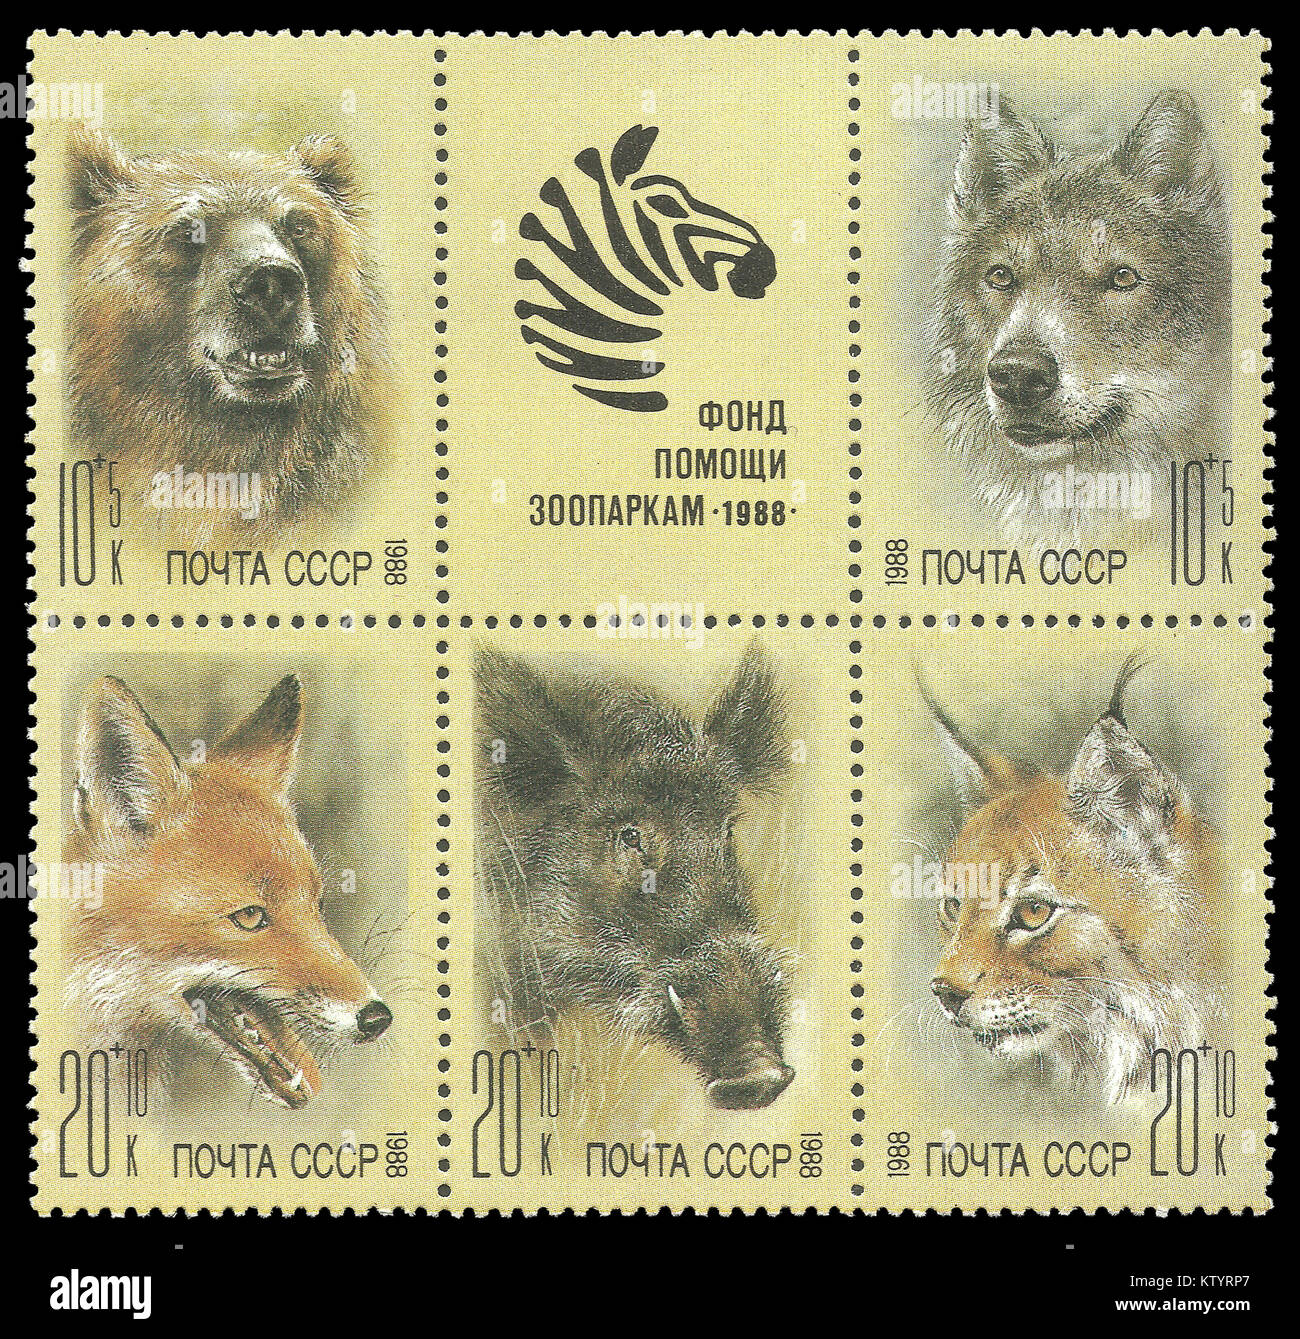 USSR - mini sheet of stamps printed in1988, Series Fauna, Mammals, ZOO Relief Fund Stock Photo